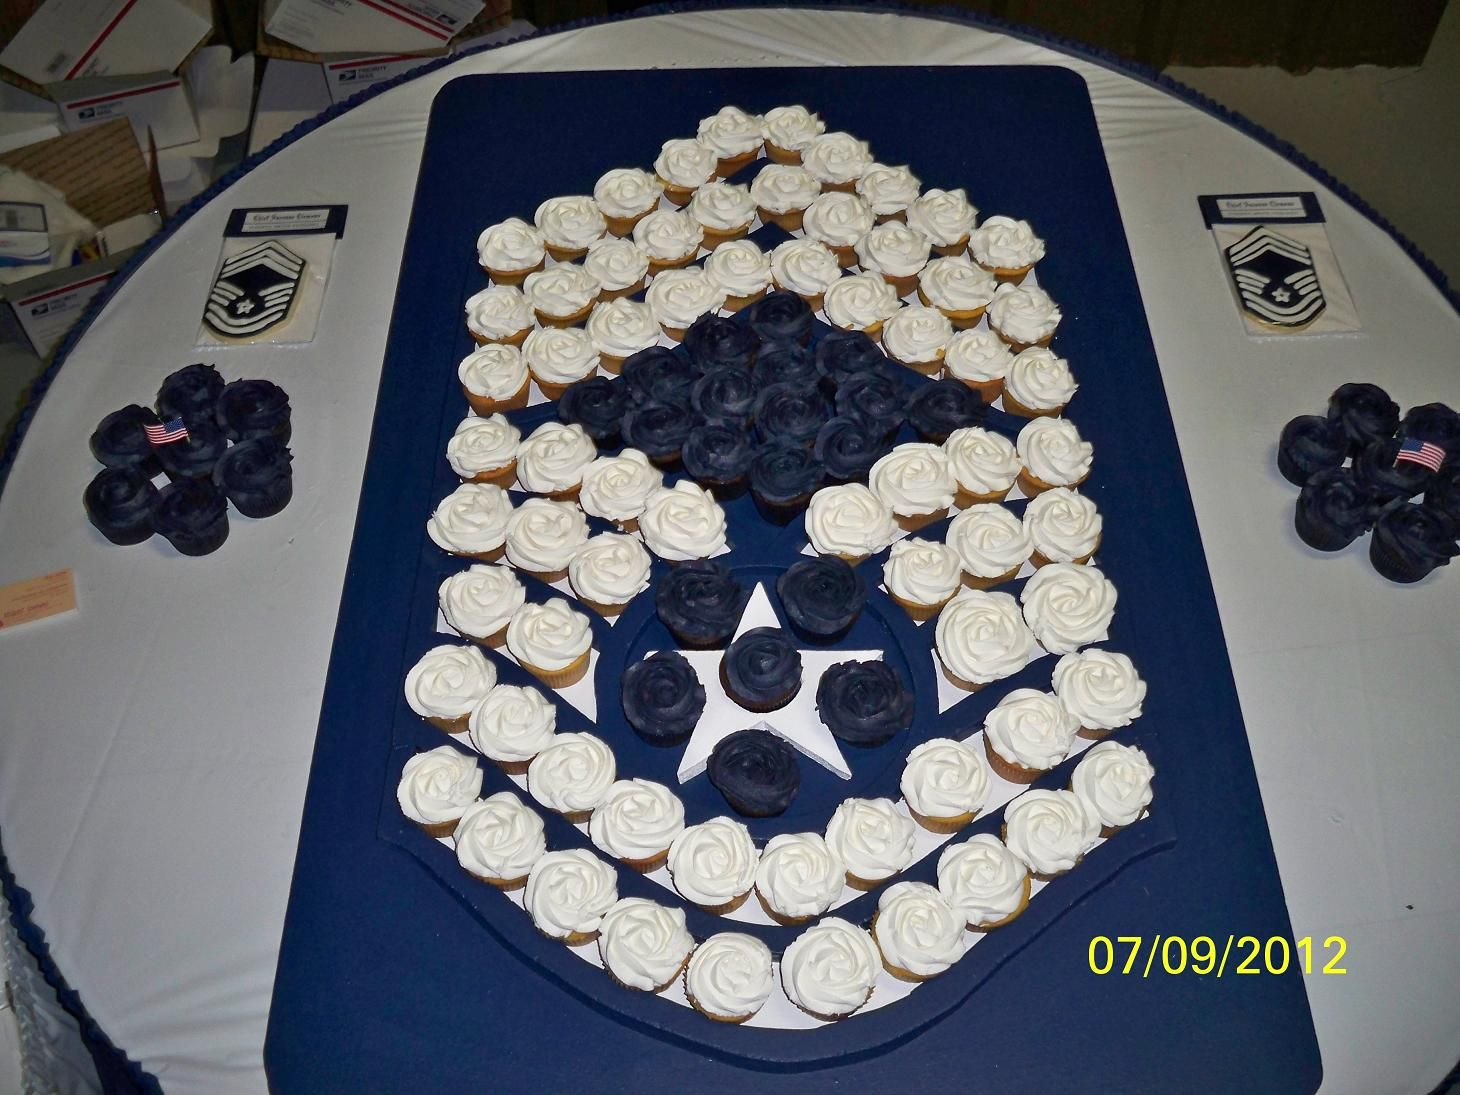 Air force cake decorations home furniture decors creating the - Cupakes For An Air Force Chief S Retirement Ceremony Cupcakes Were Displayed On A Custom Made